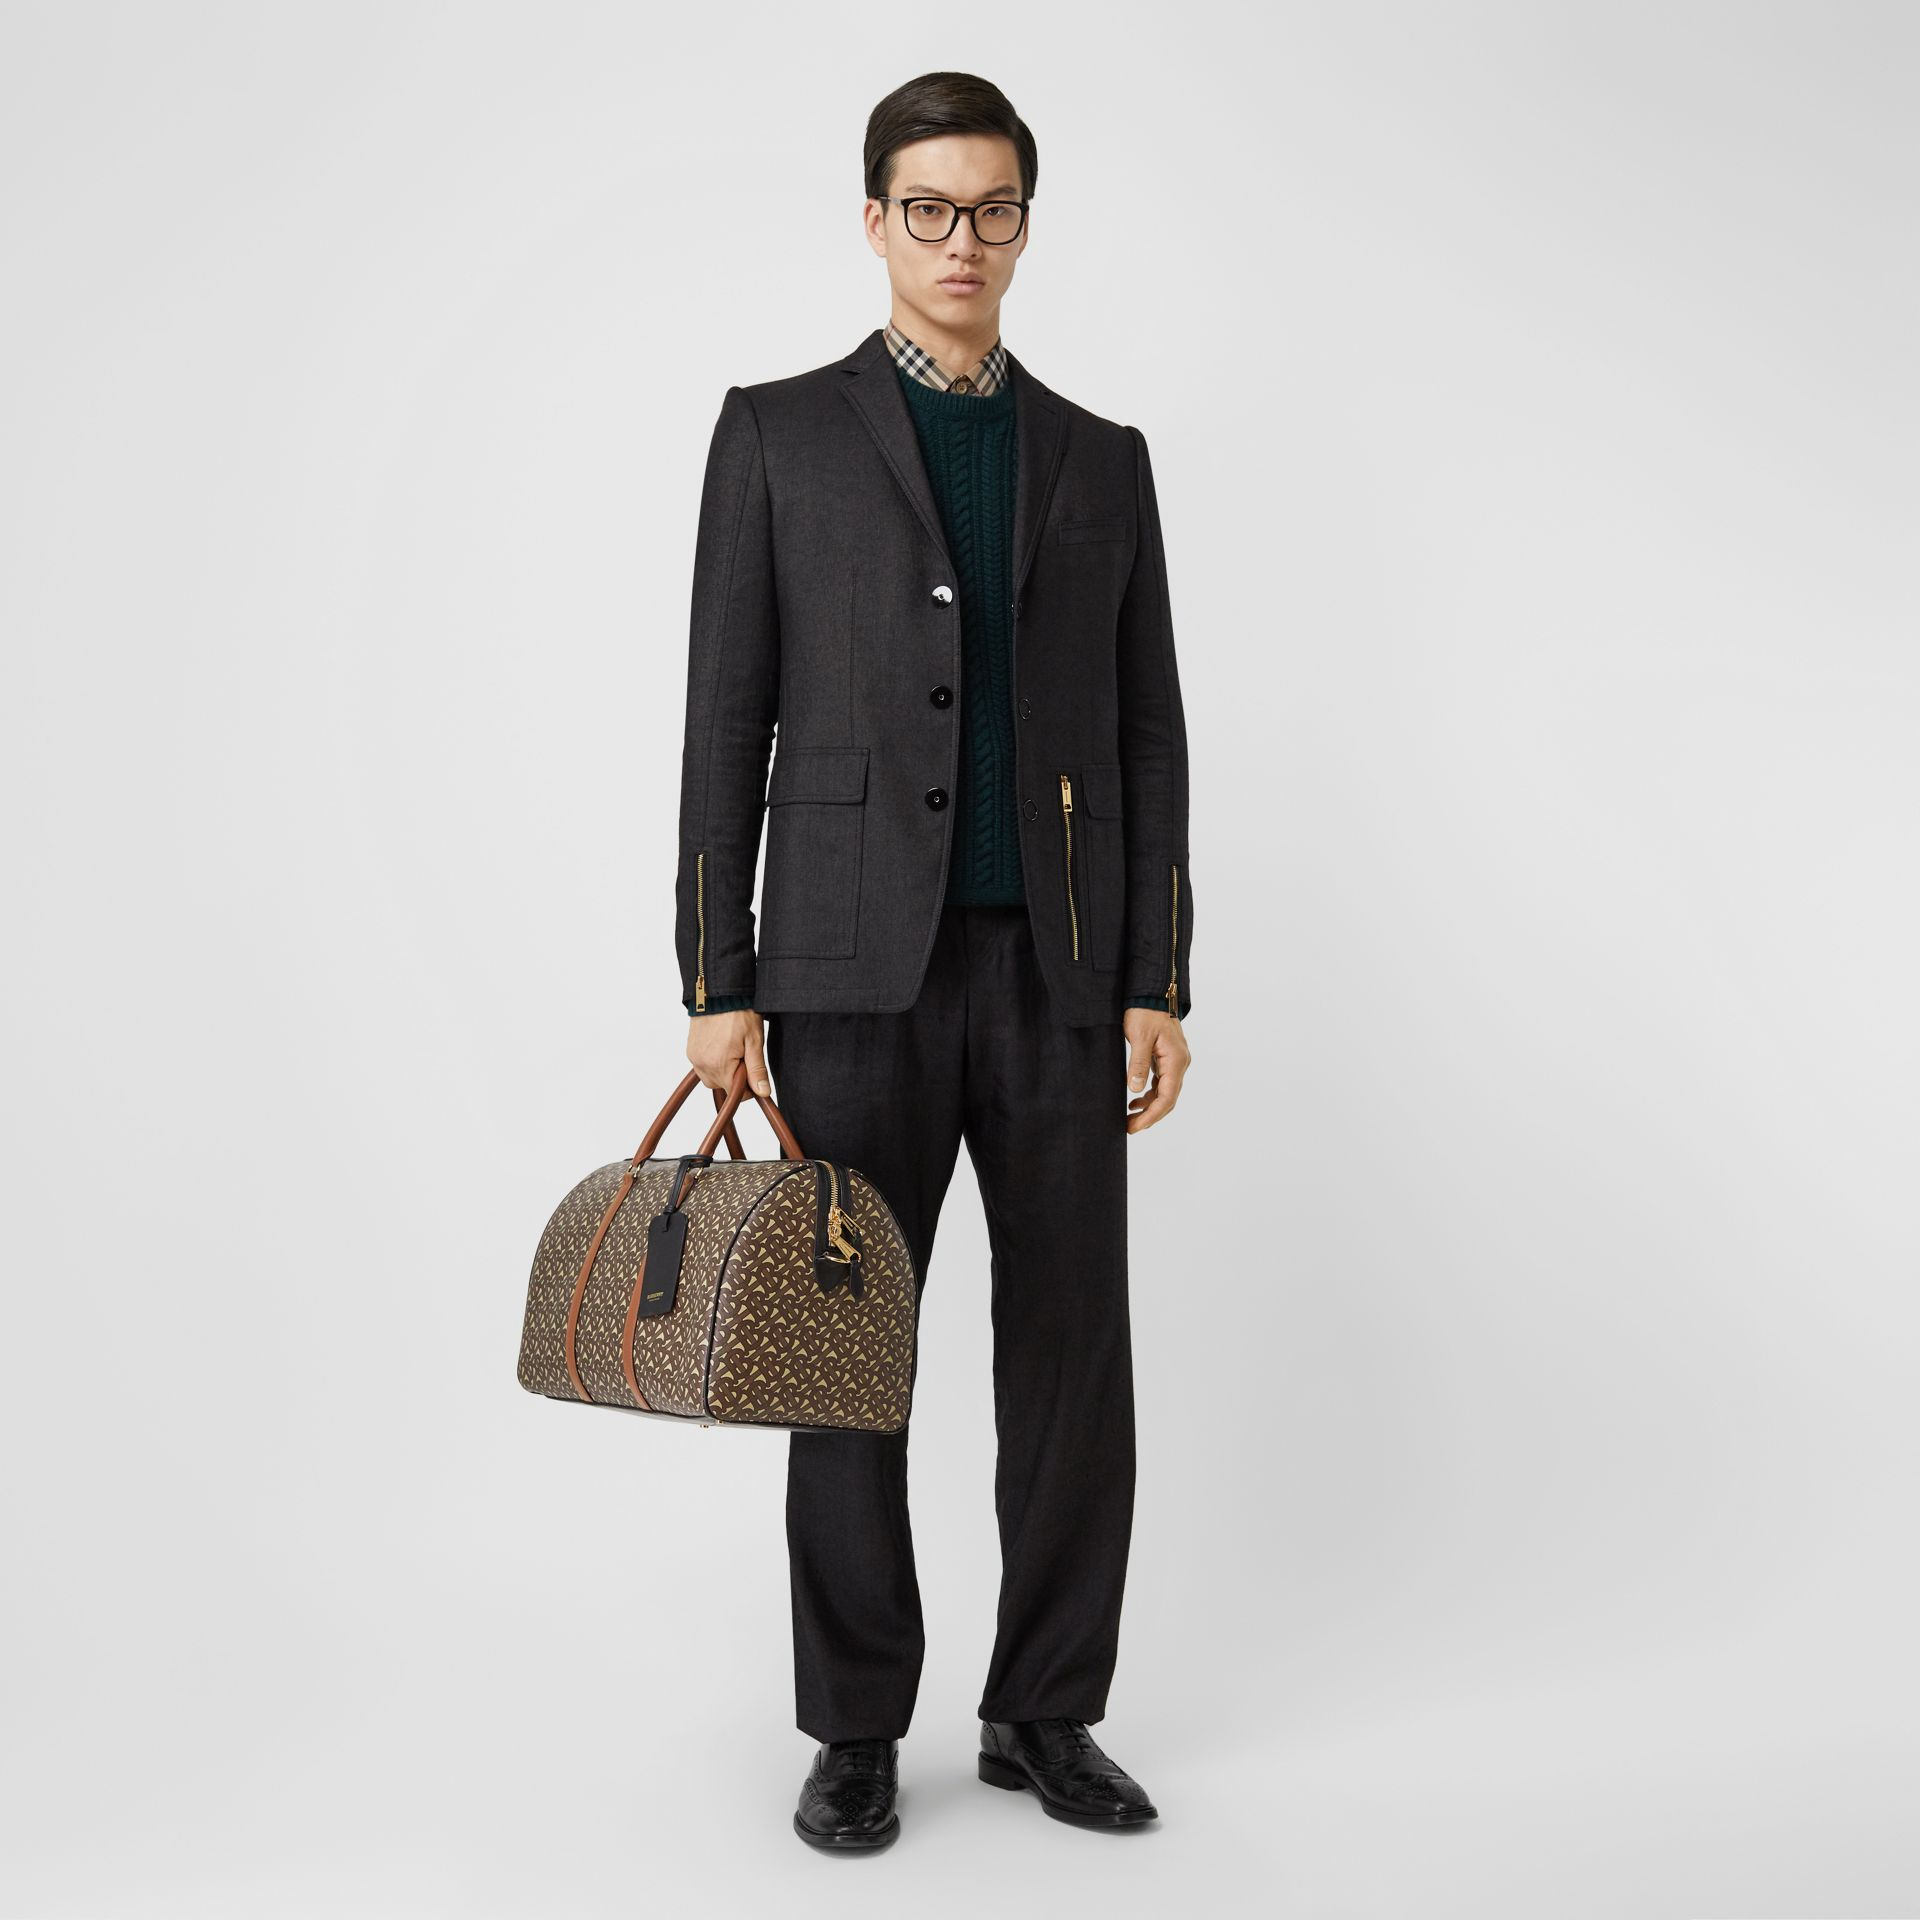 Monogram Print E-canvas and Leather Holdall in Bridle Brown - Men | Burberry - gallery image 2